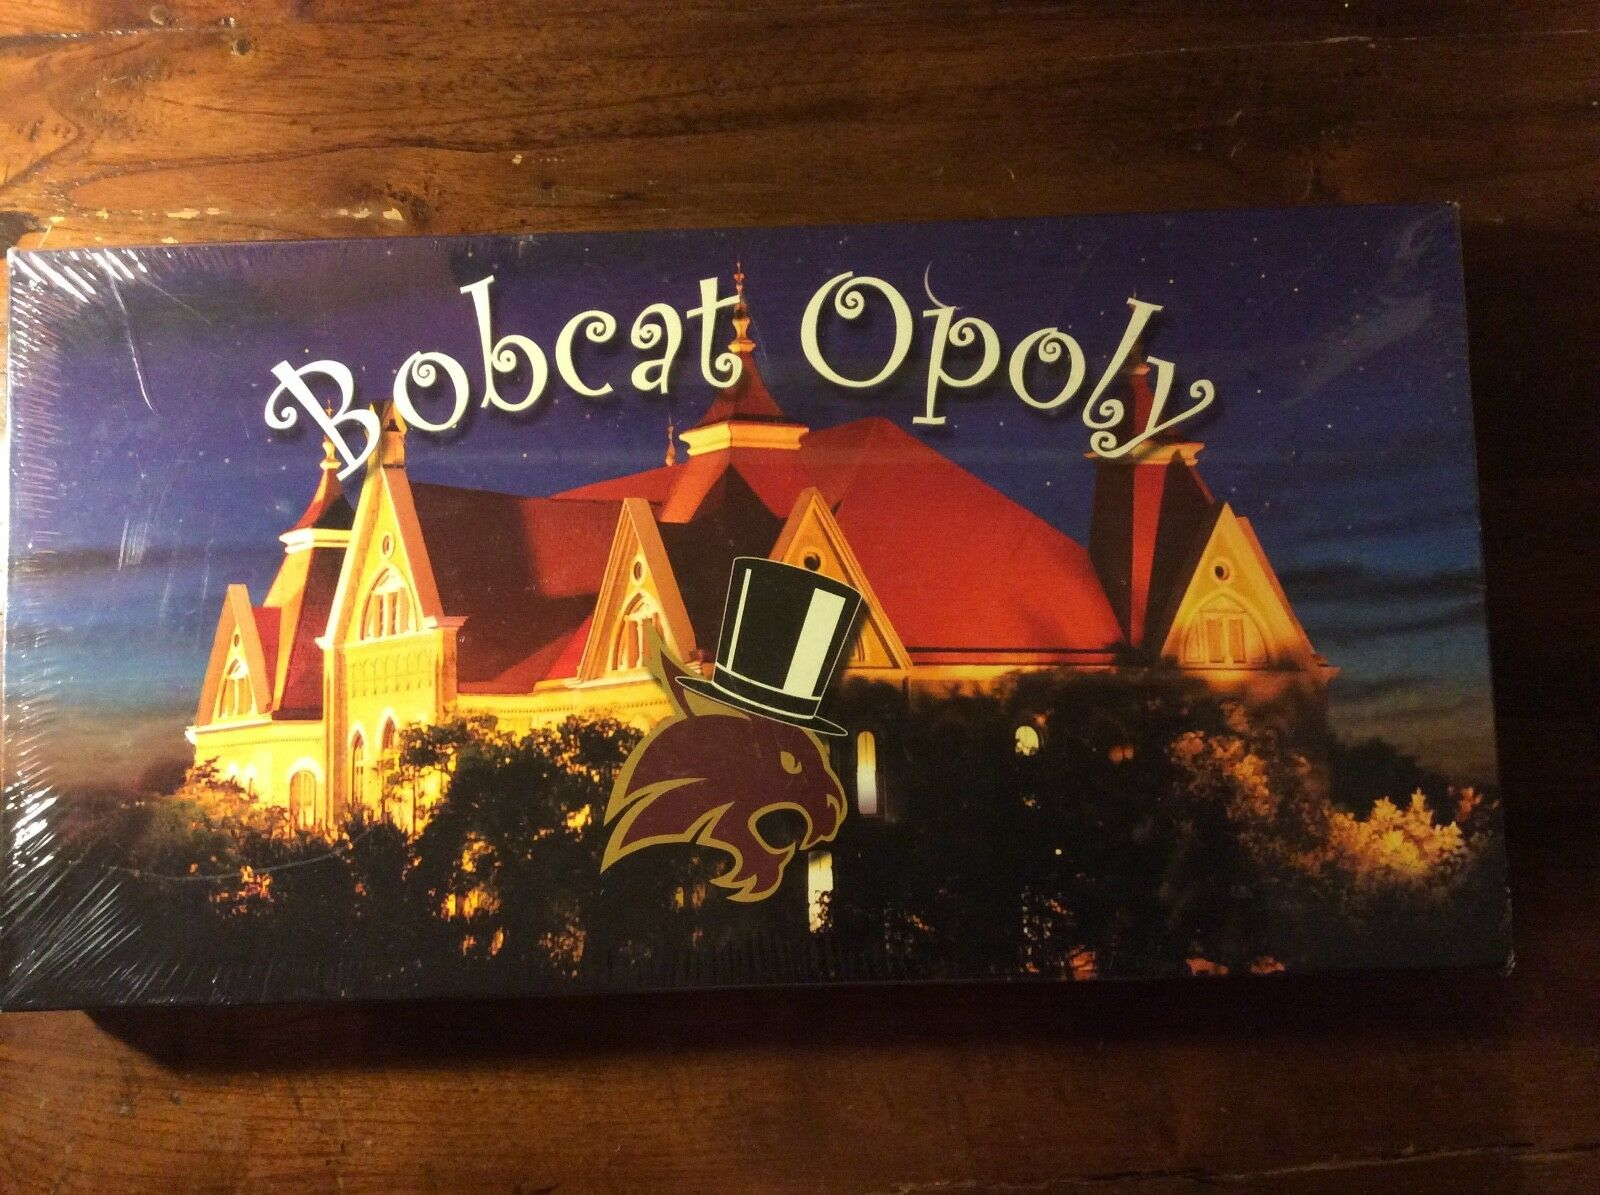 Bobcat Opoly Texas State University Monopoly-Like Game